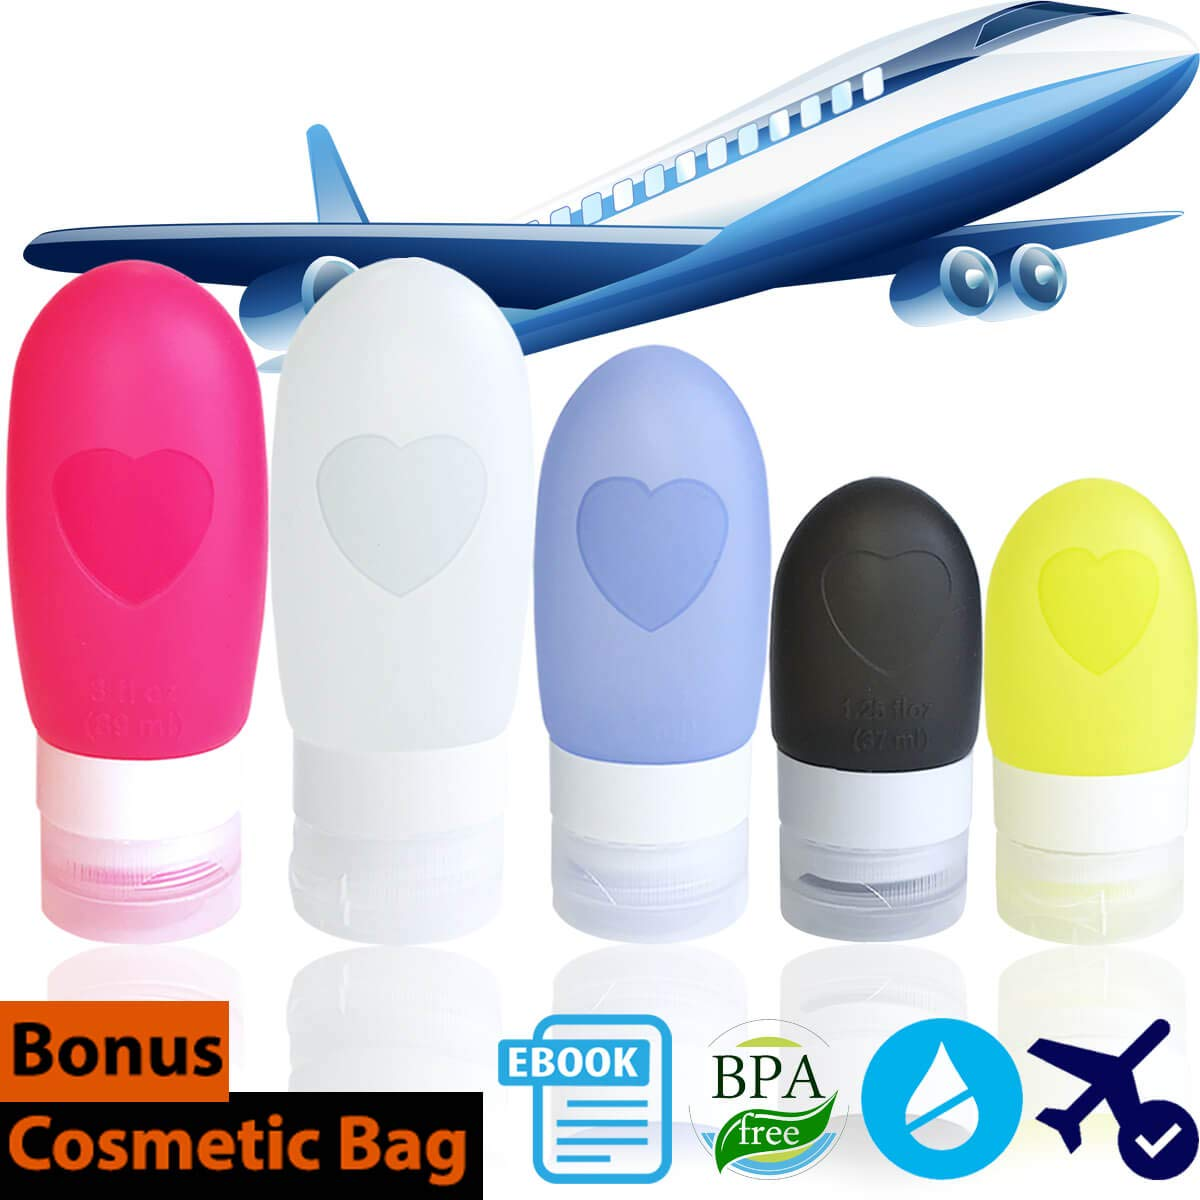 Leakproof Travel Bottles - Silicone Travel Tube Sets Pack of 5 | 3 Sizes Squeezable Refillable Portable Containers for Liquid Shampoo Conditioner Lotion Soap Toiletries TSA Approved Free Zipper Bags